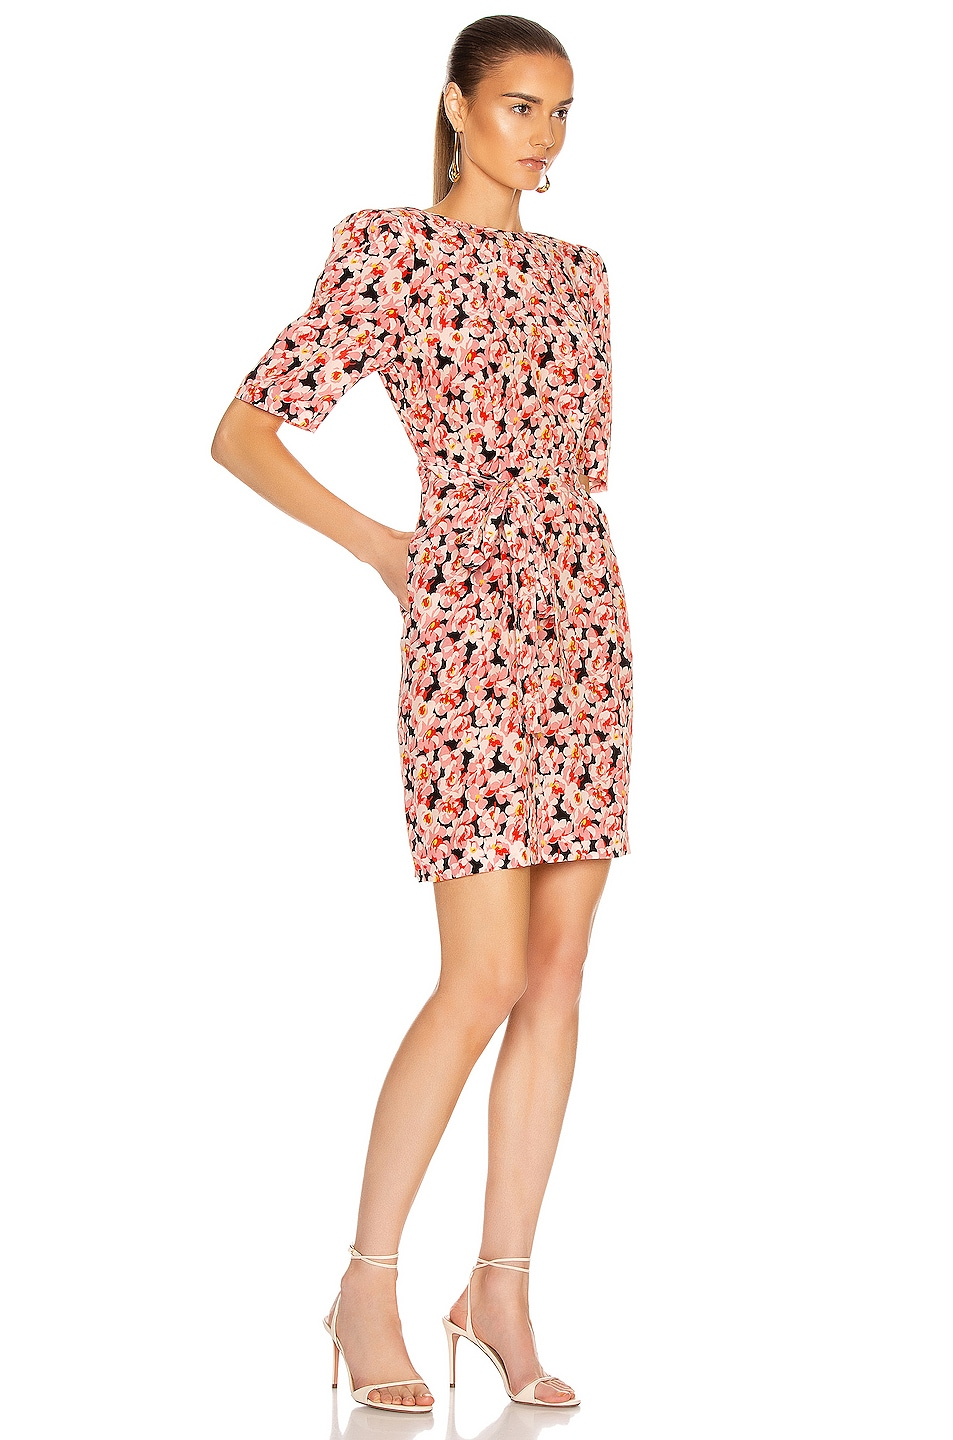 Image 2 of Stella McCartney Blossom Dress in Multicolor Pink